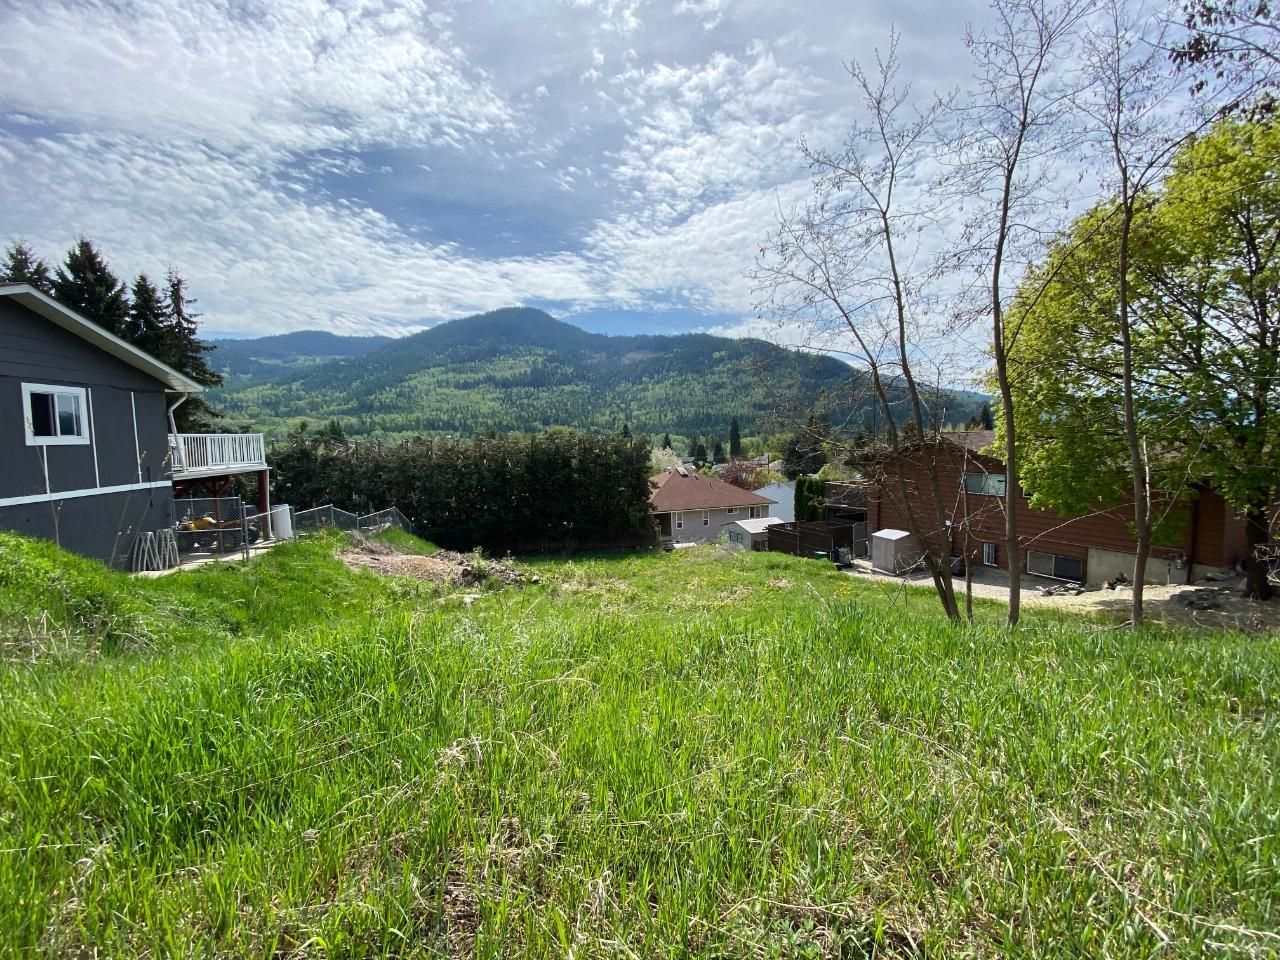 Main Photo: 913 7TH STREET in Montrose: Vacant Land for sale : MLS®# 2458356